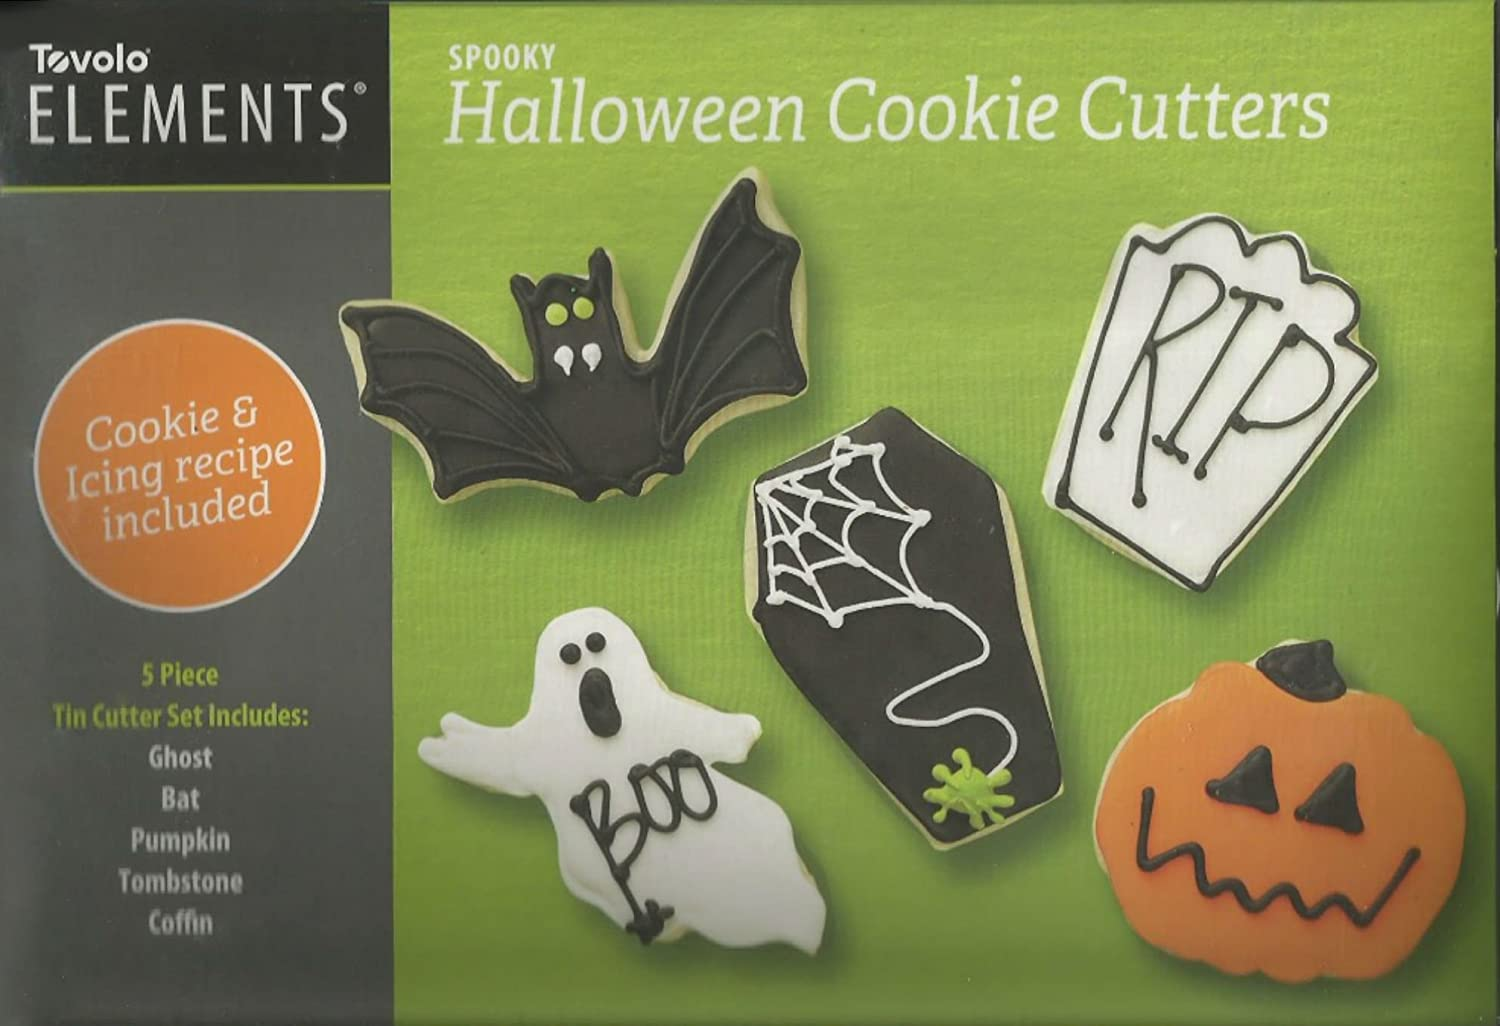 Tovolo Elements Spooky Halloween Cookie Cutters